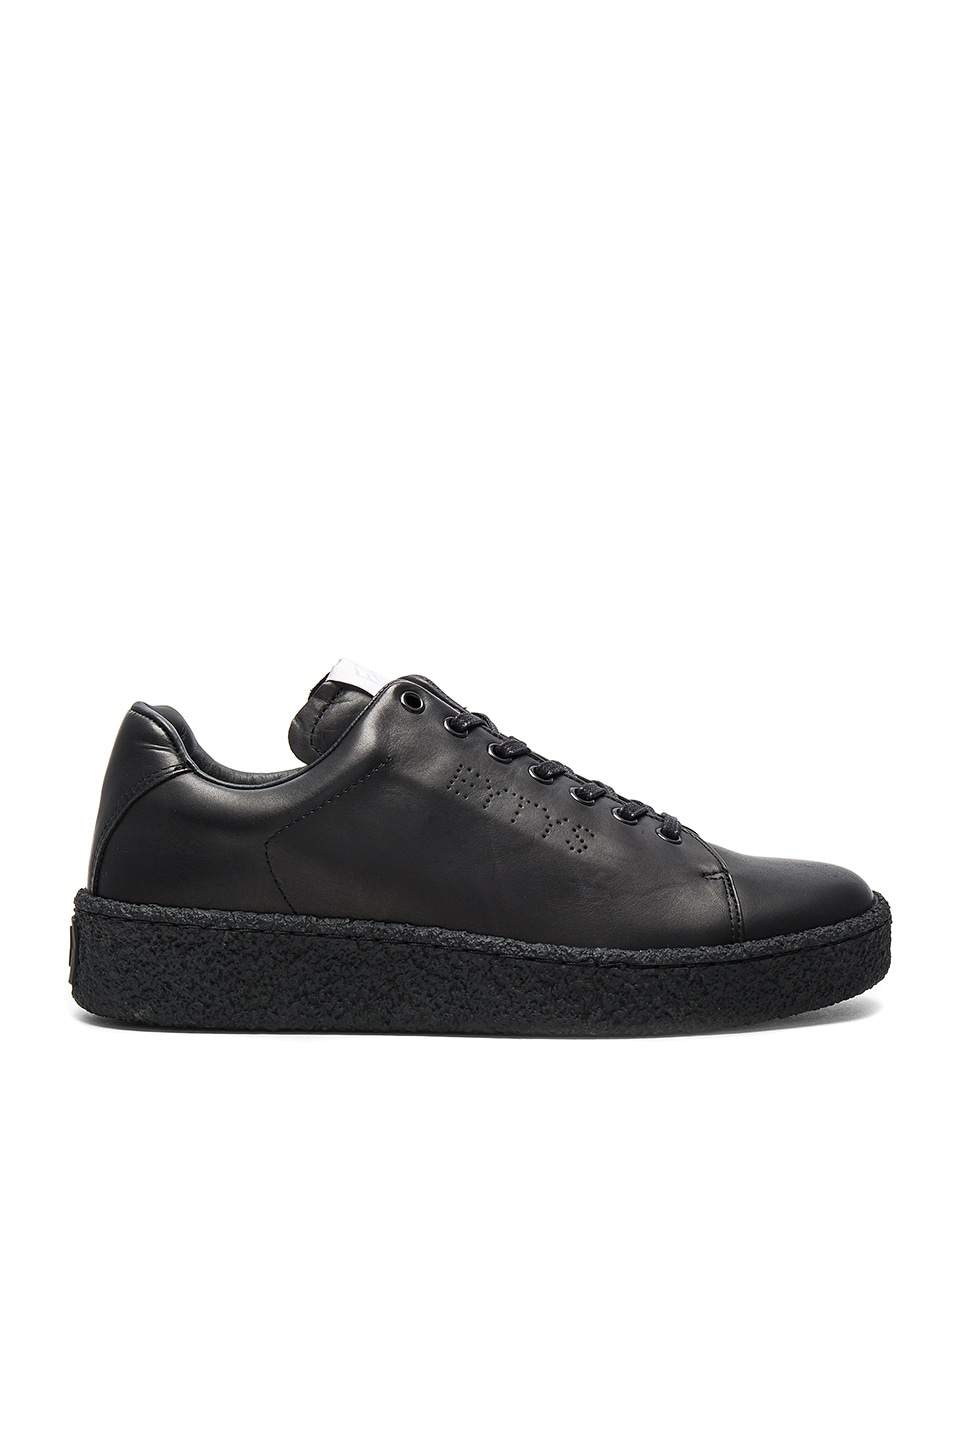 Eytys Ace Leather in All Black | REVOLVE